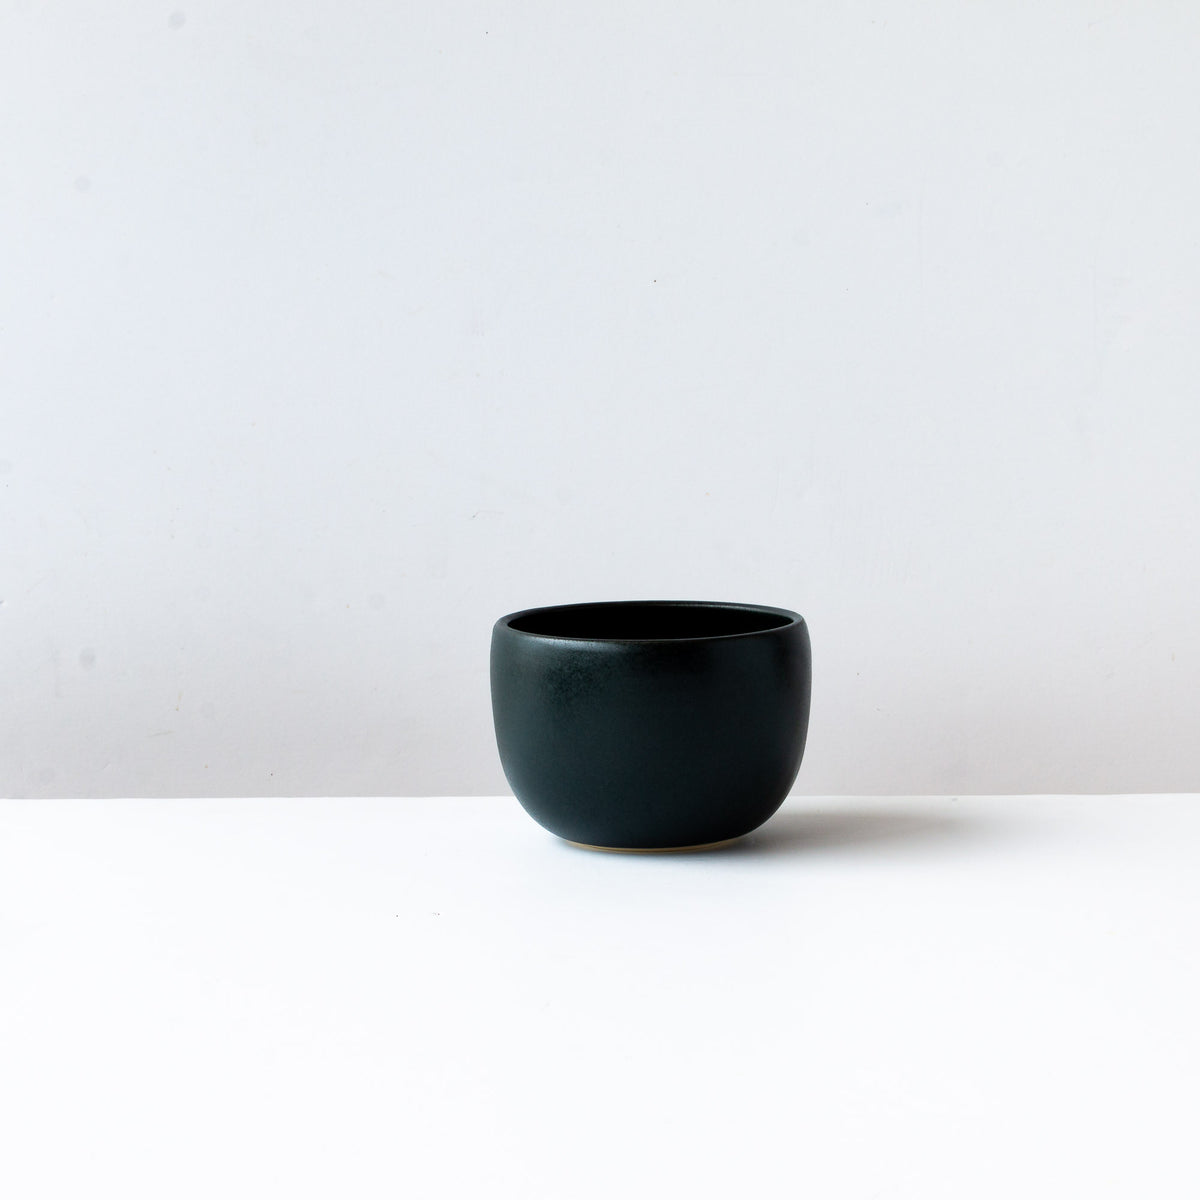 Front View - Black Satin Glazed Porcelain Soup Bowl - Sold by Chic & Basta